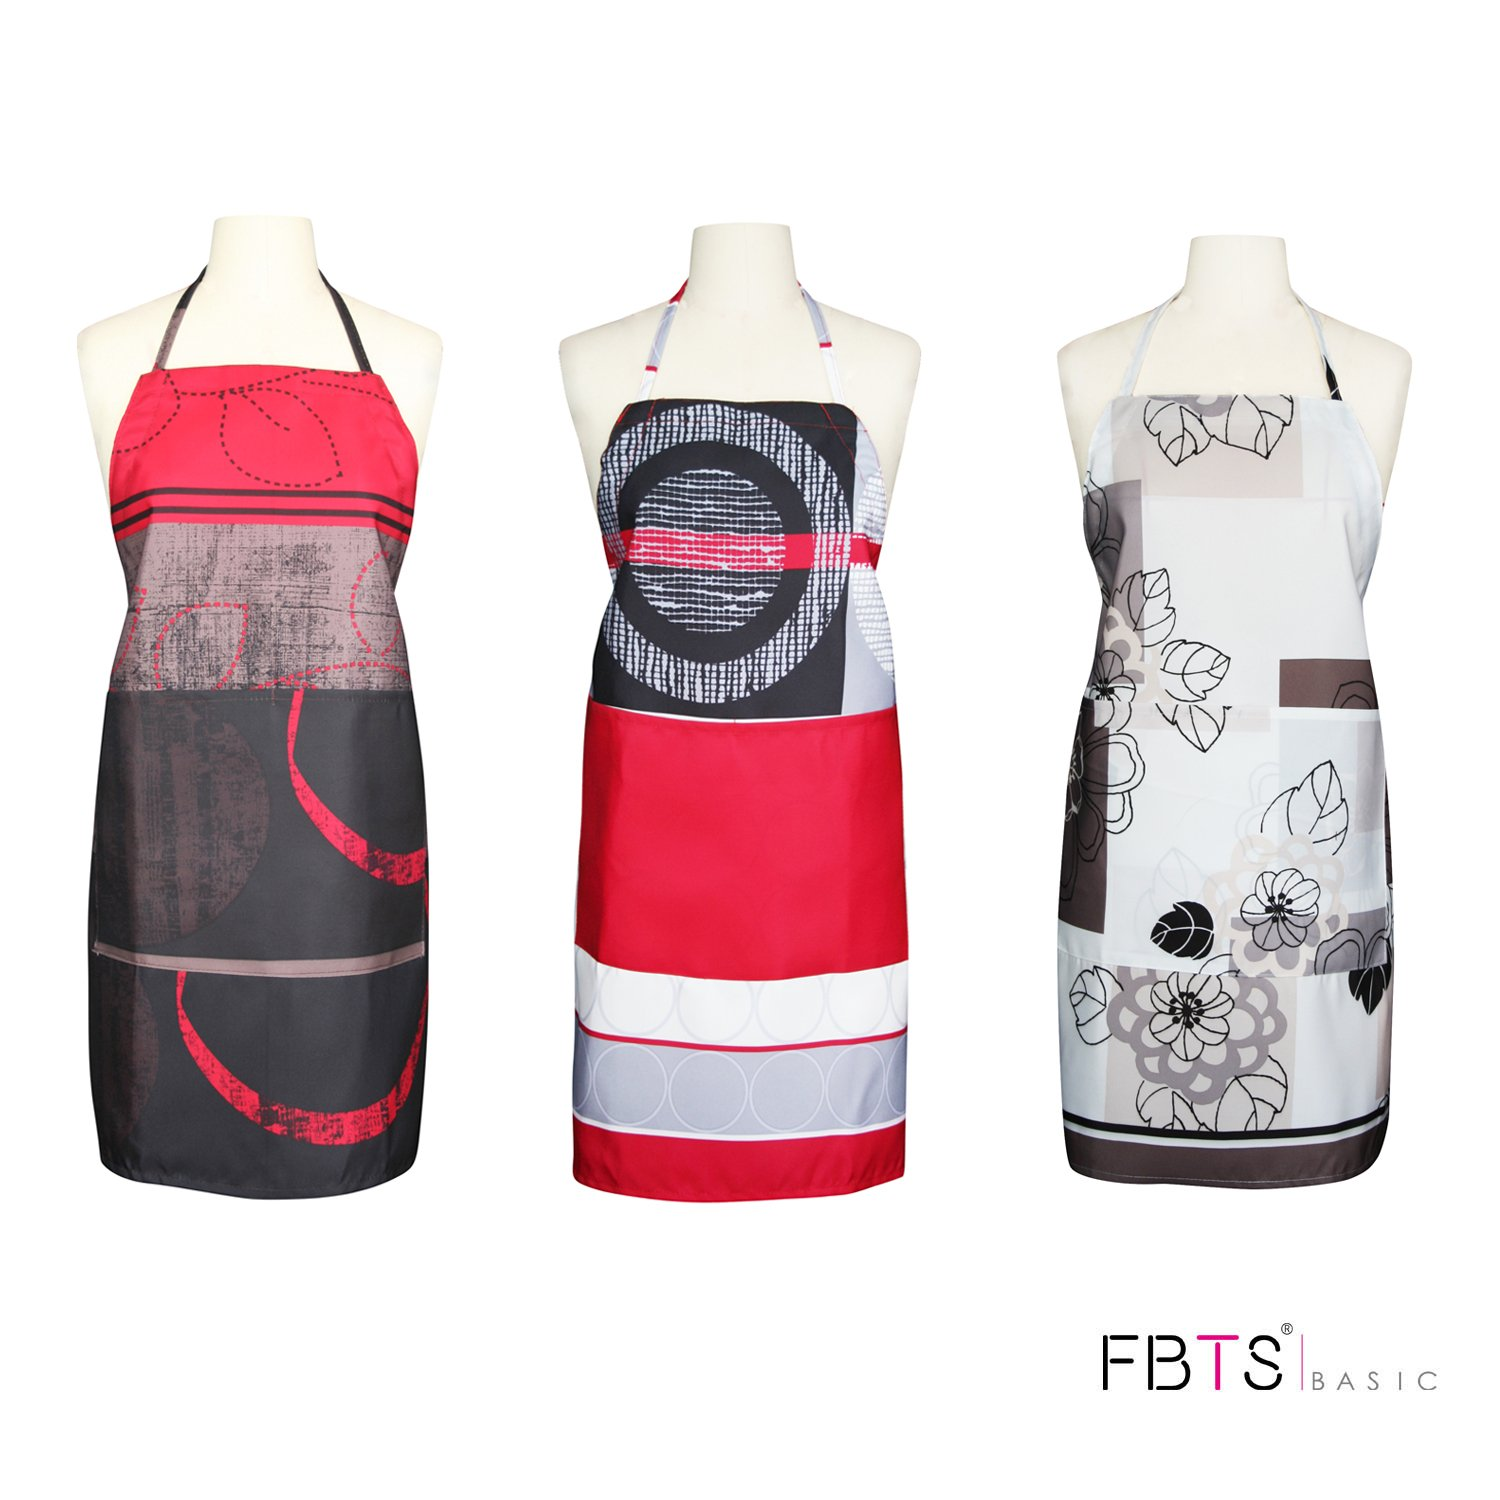 FBTS Basic Aprons For Women And Men 3 Packs Water Resistant Adjustable Buckles with Two Big Front Pockets